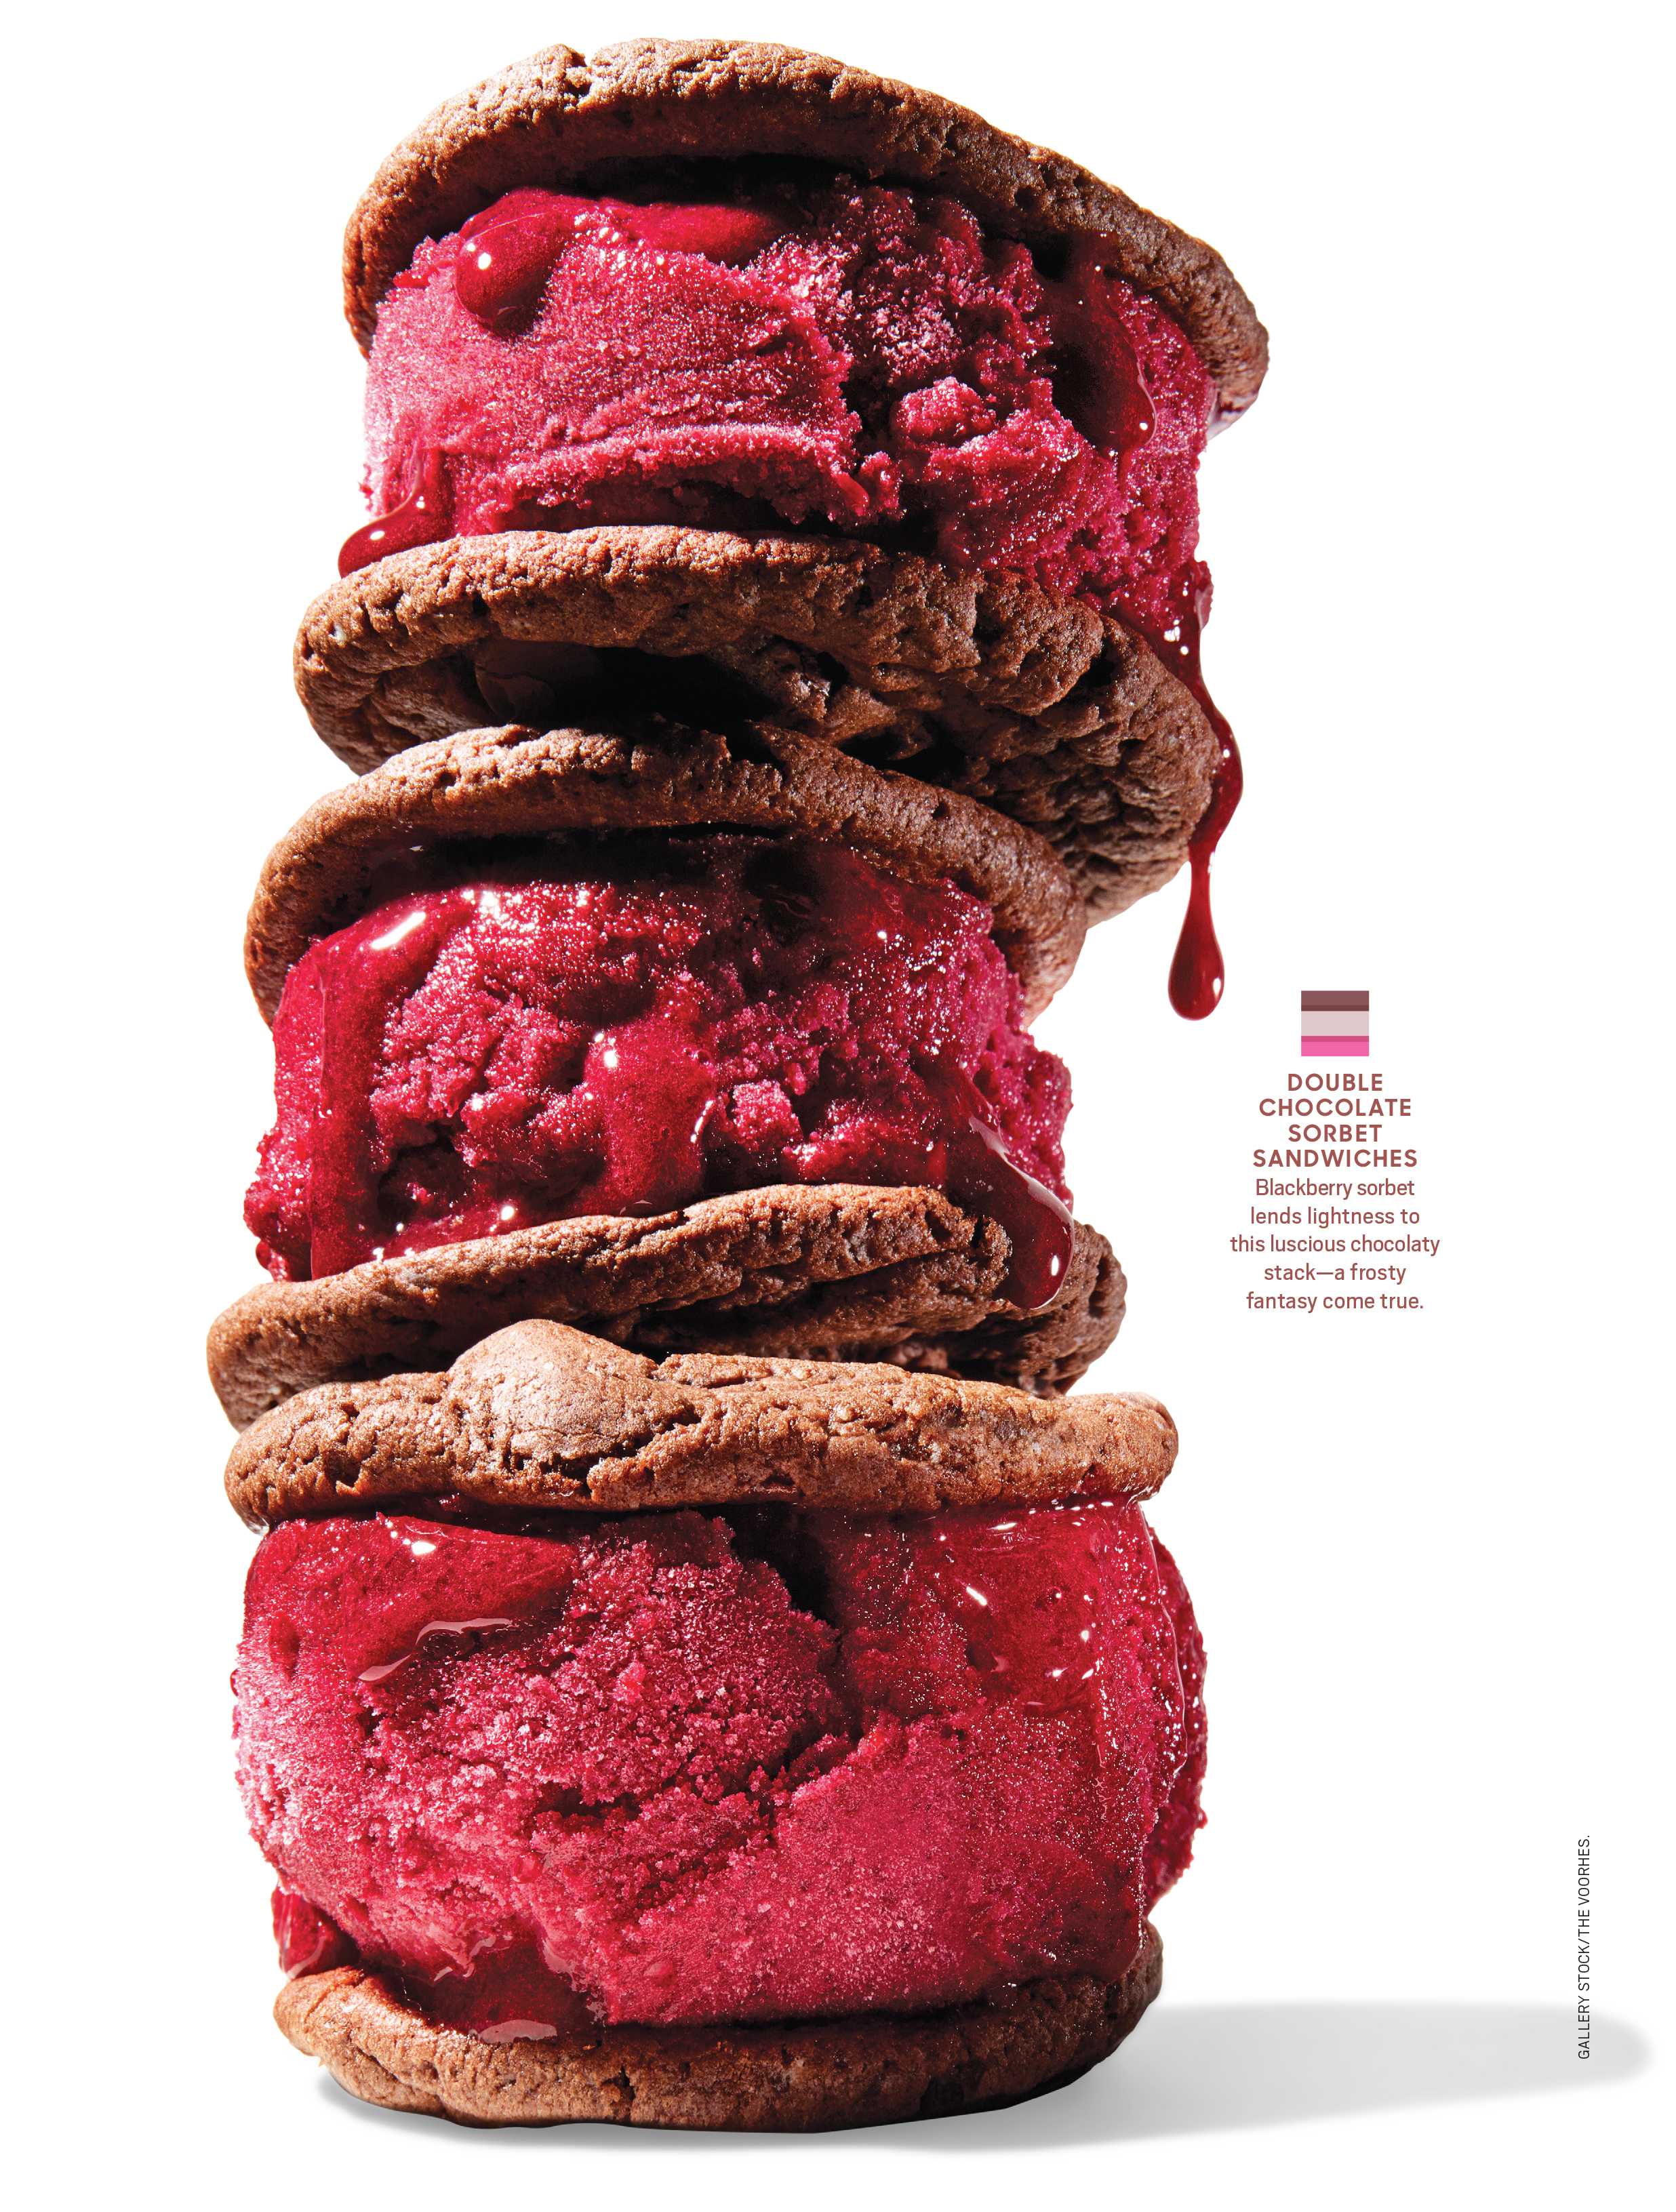 Double Chocolate Sorbet Sandwiches by Judy Kim